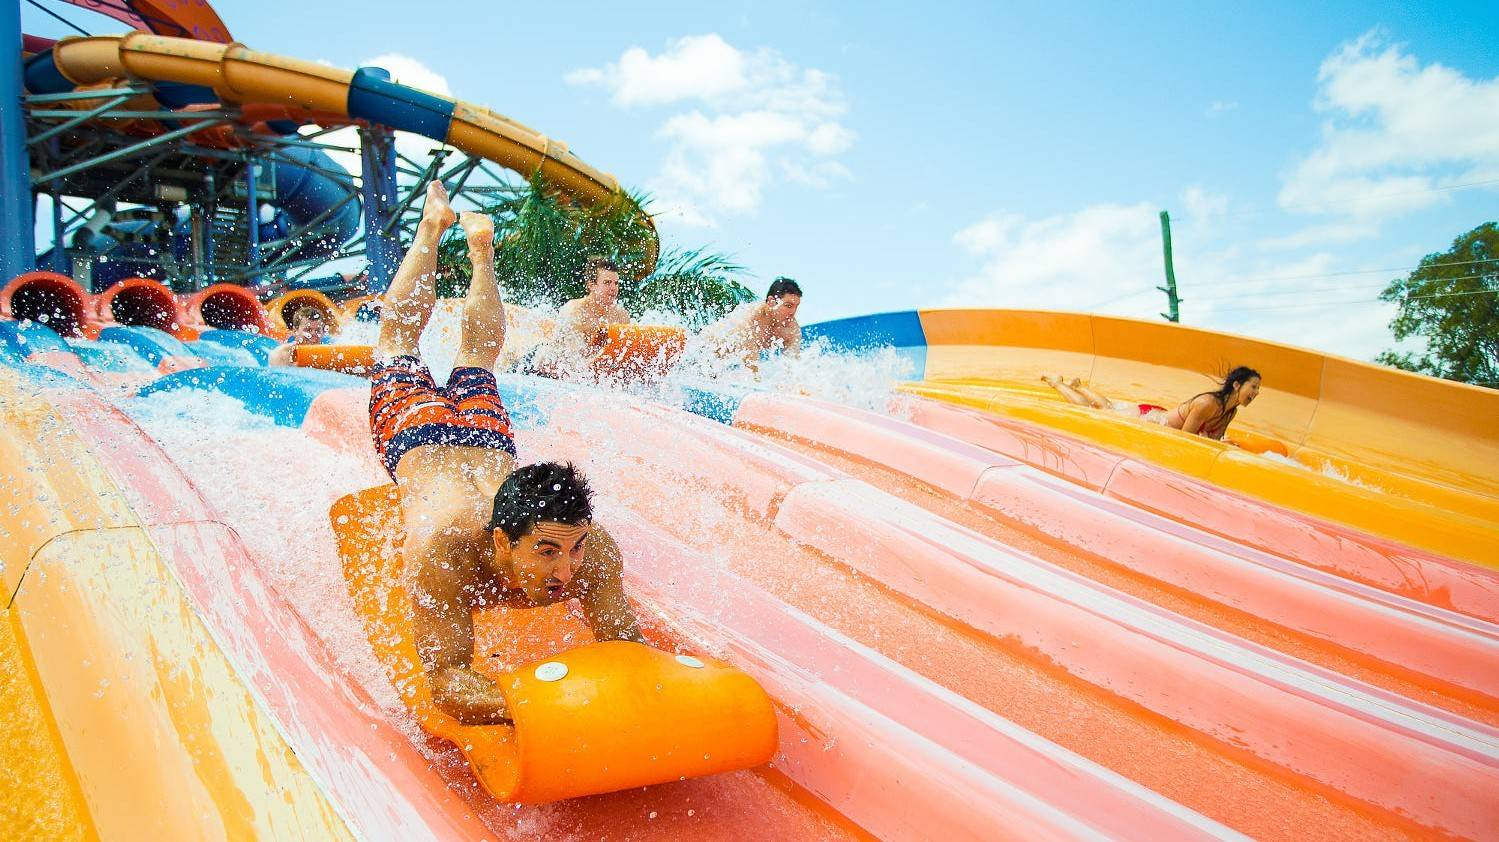 WhiteWater World - Things To Do On The Gold Coast